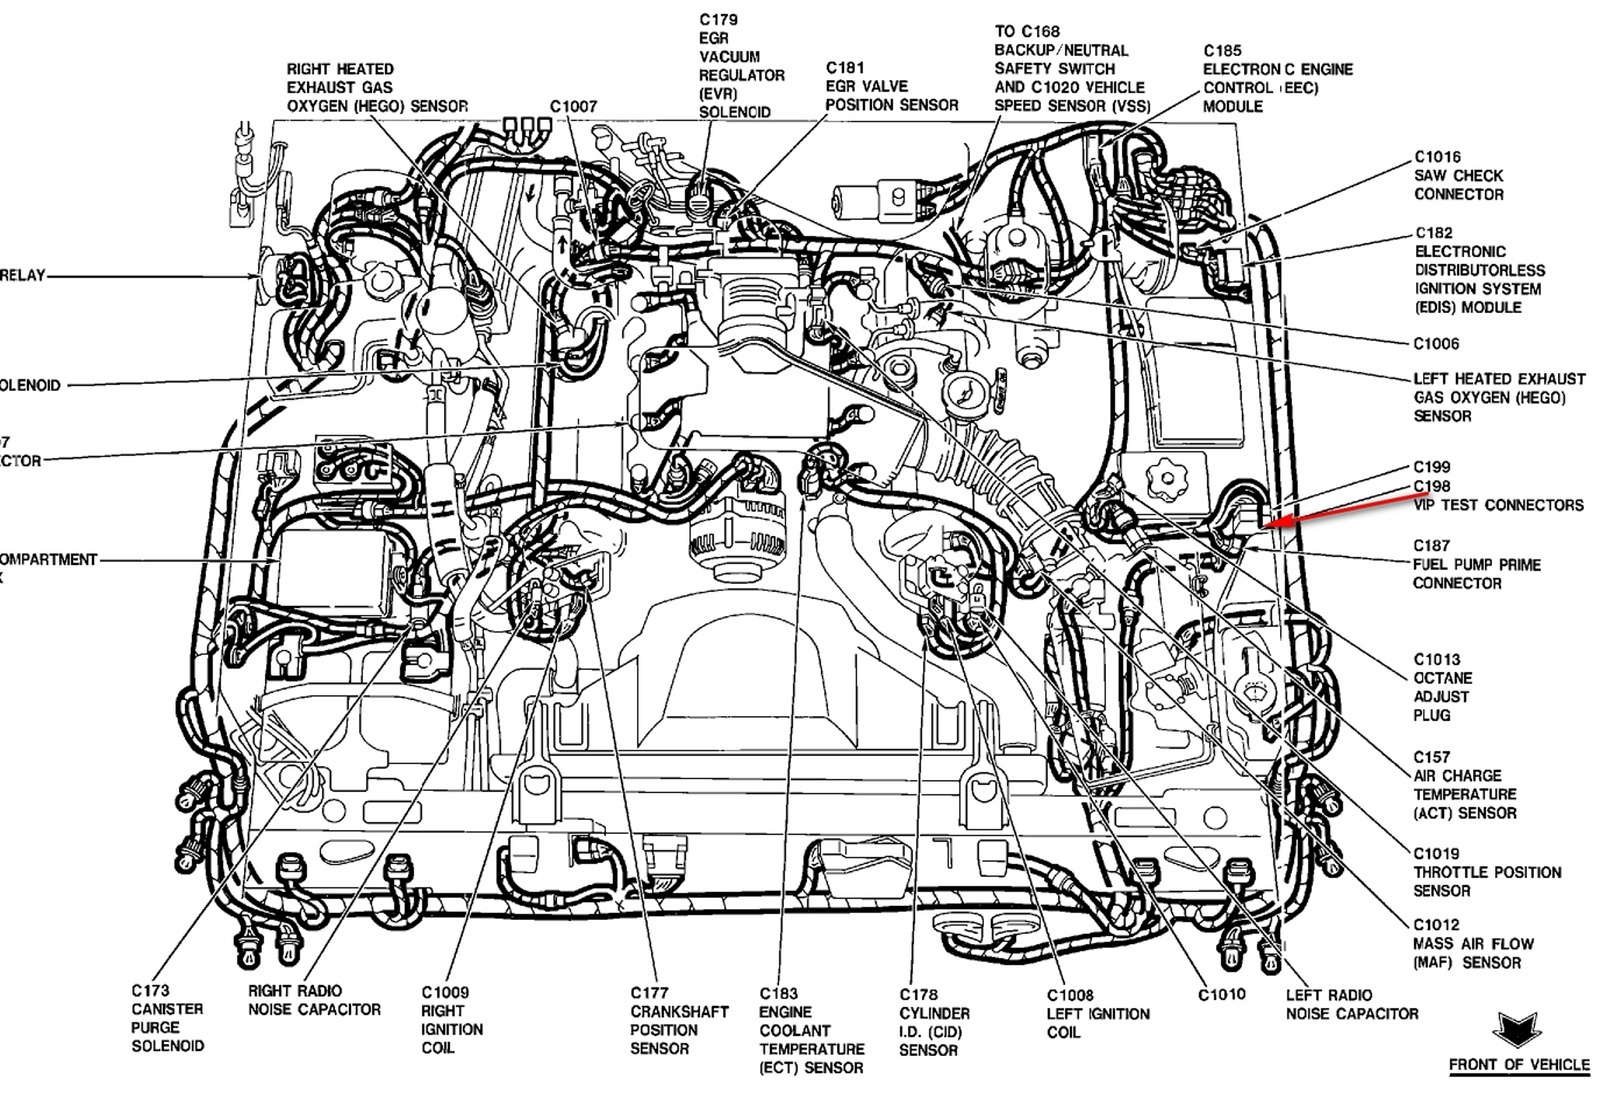 2002 Lincoln Ls Engine Diagram For Model A Guide And 2000 Continental Wiring Blog Rh 46 Fuerstliche Weine De Diagrams